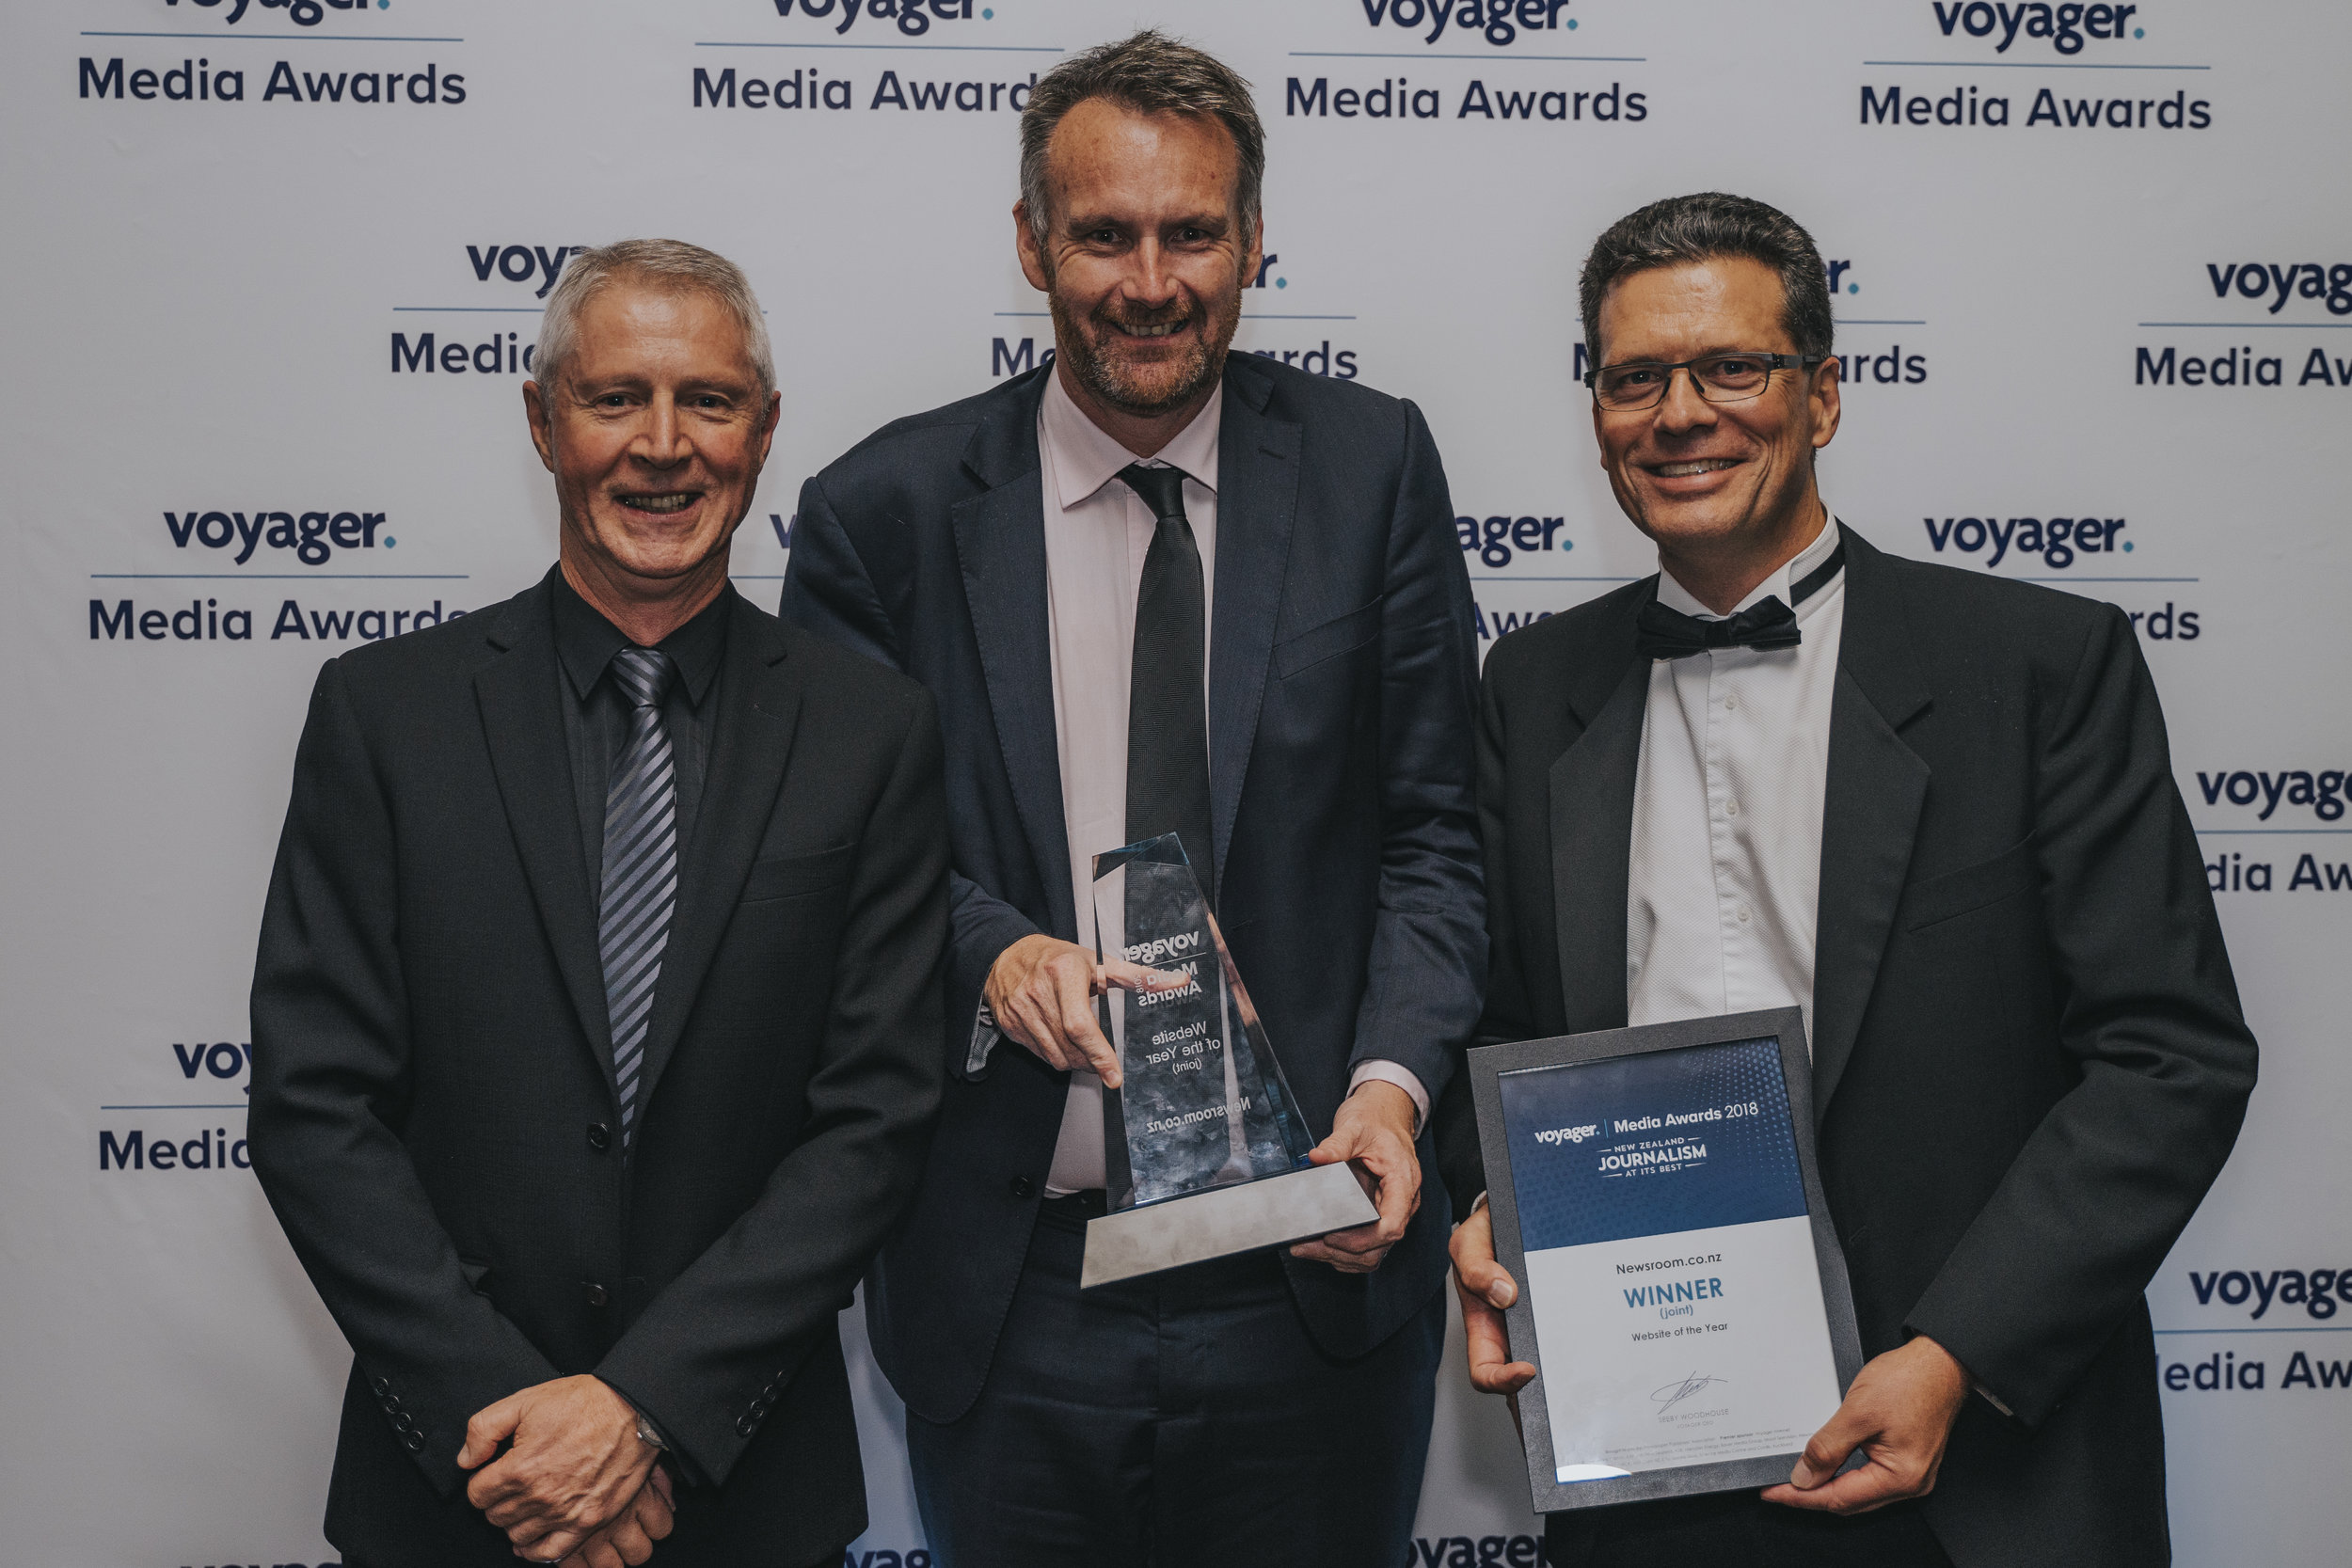 Voyager Media Awards 2018-422.JPG